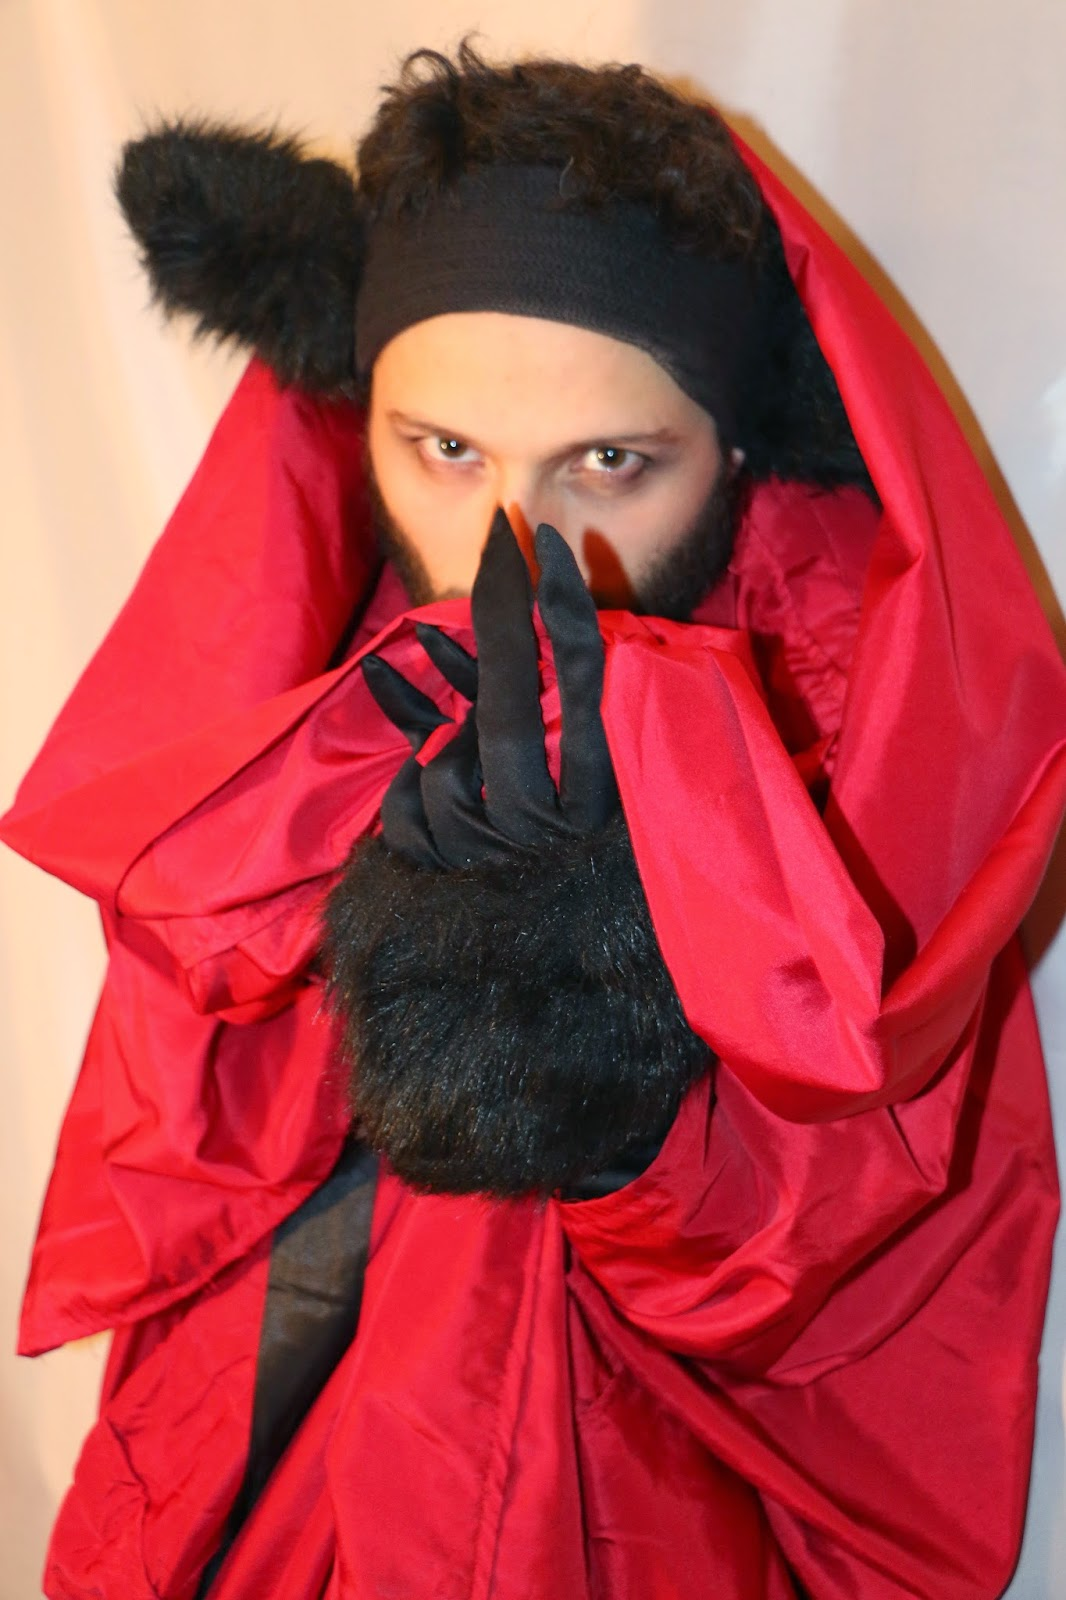 THE CHARMING BIG BAD WOLF-1G-RED RIDING HOOD 2015--GLEAMS THEATER--IRA SOKOLOVA- PHOTO: SHAHRZAD GHAFFARI WESTMOUNT, QUEBEC, CANADA